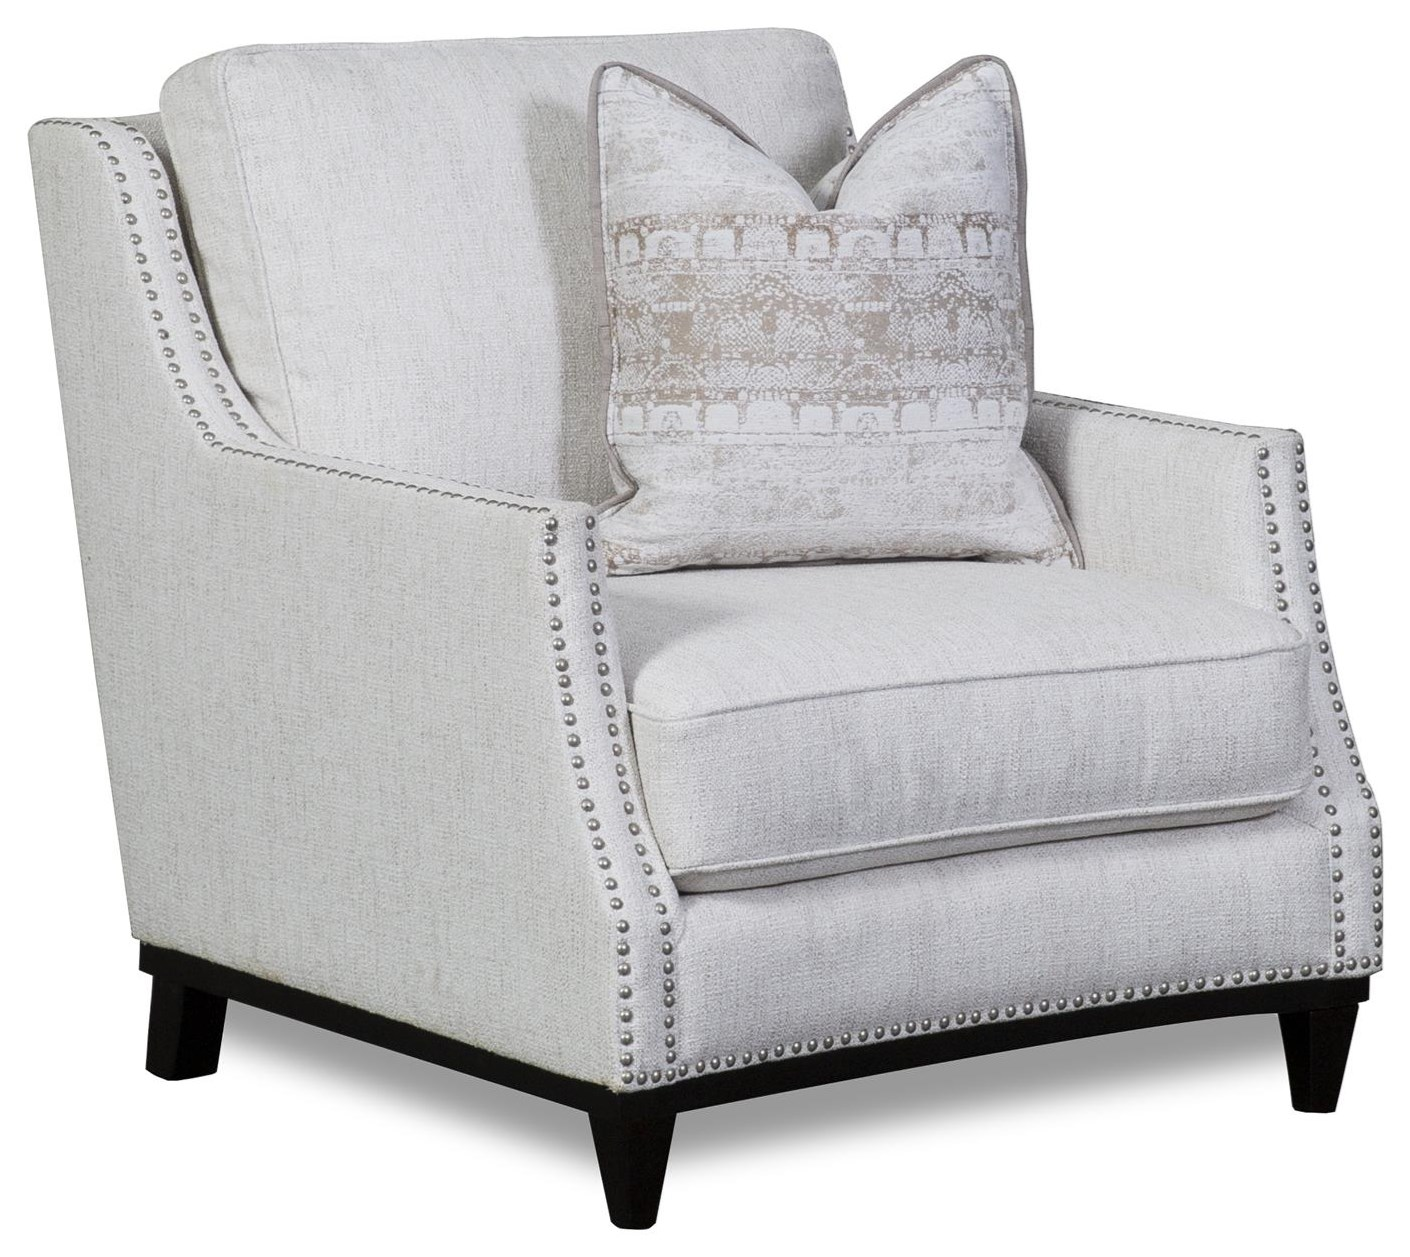 Ava Fresco Chair by Aria Designs at Stoney Creek Furniture